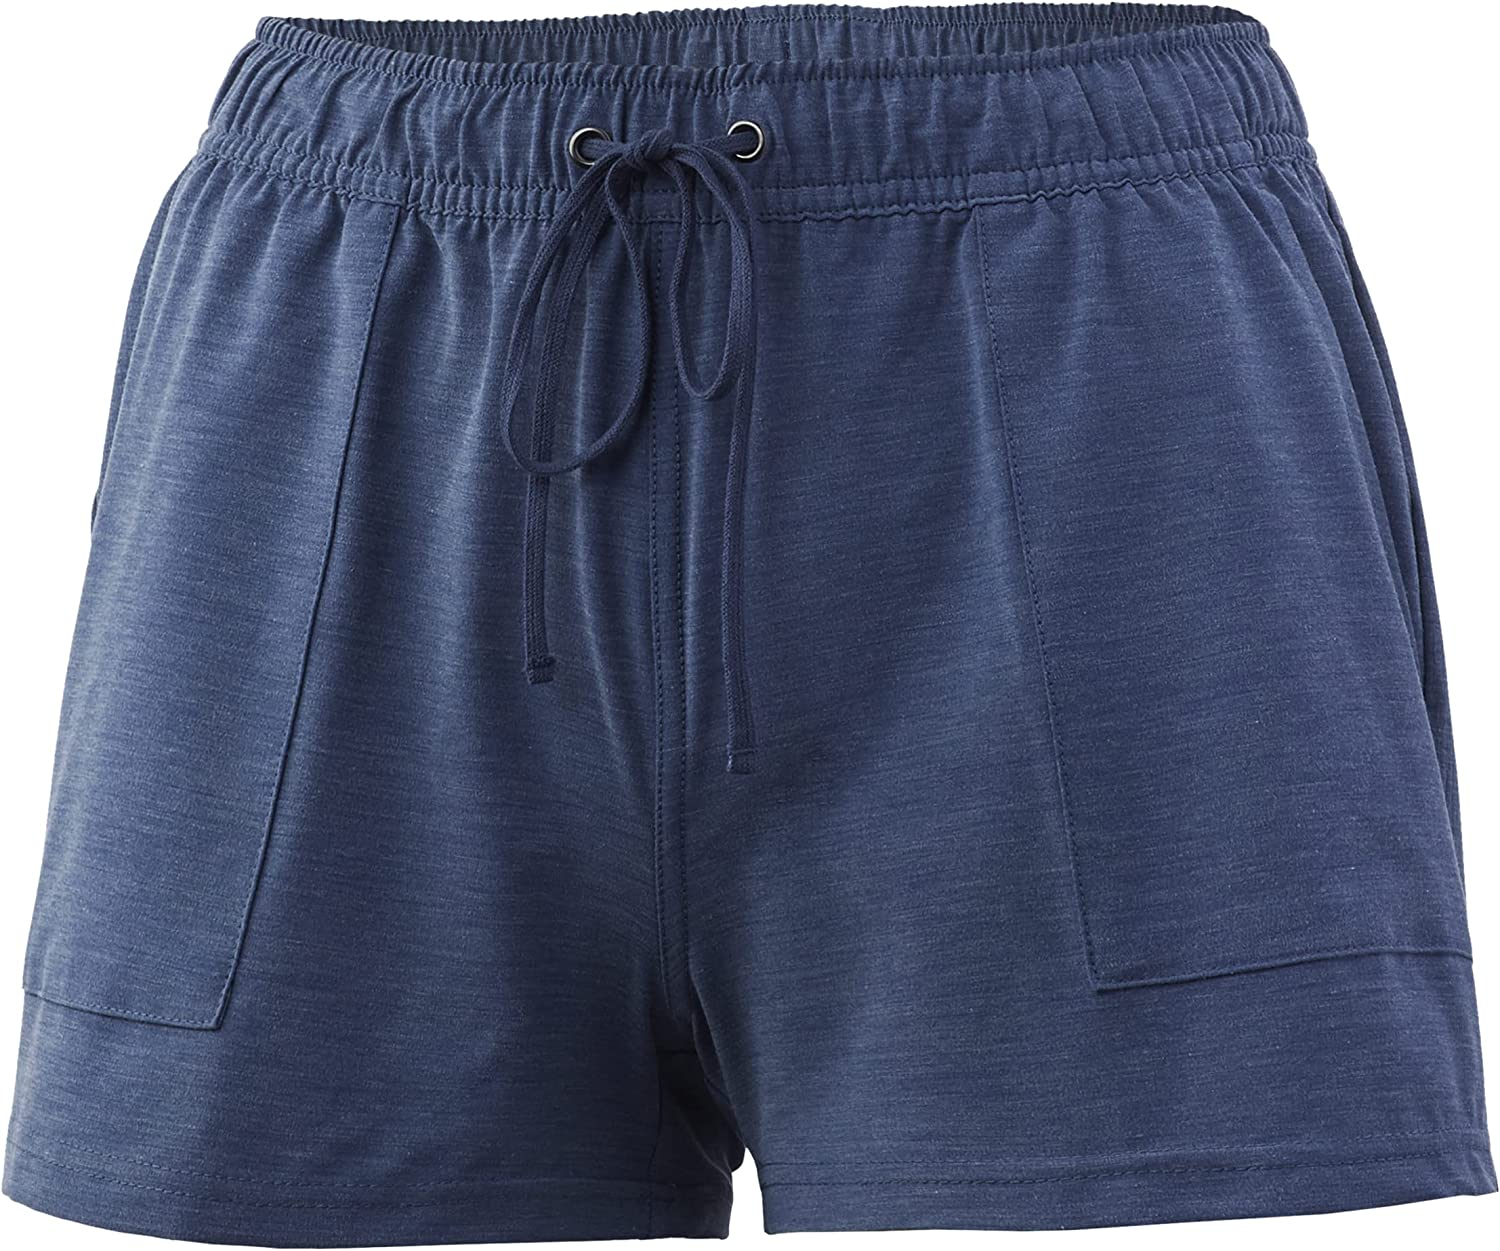 HUK Women's Spinner Short Performance Max Translated 51% OFF Quick-Drying